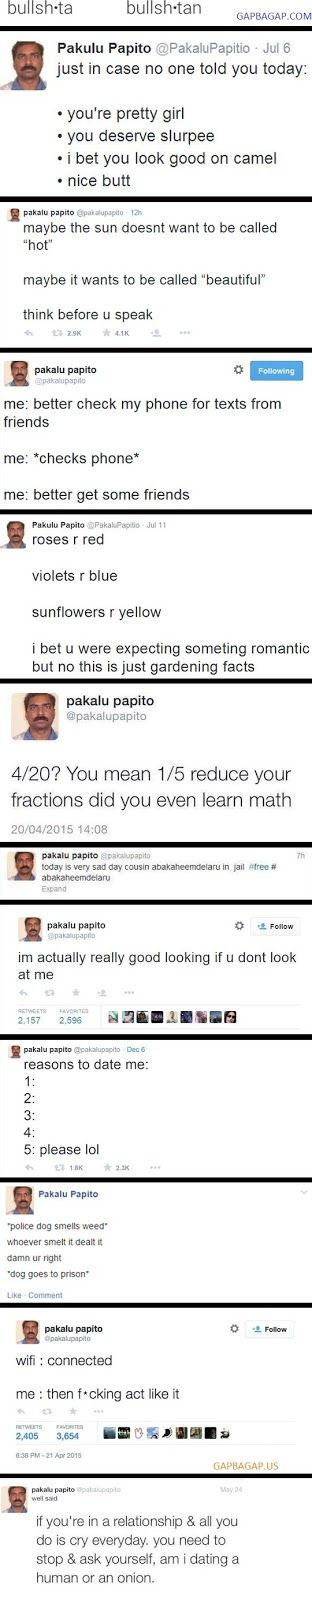 Top 10 Funniest Tweets By Pakalu Papito